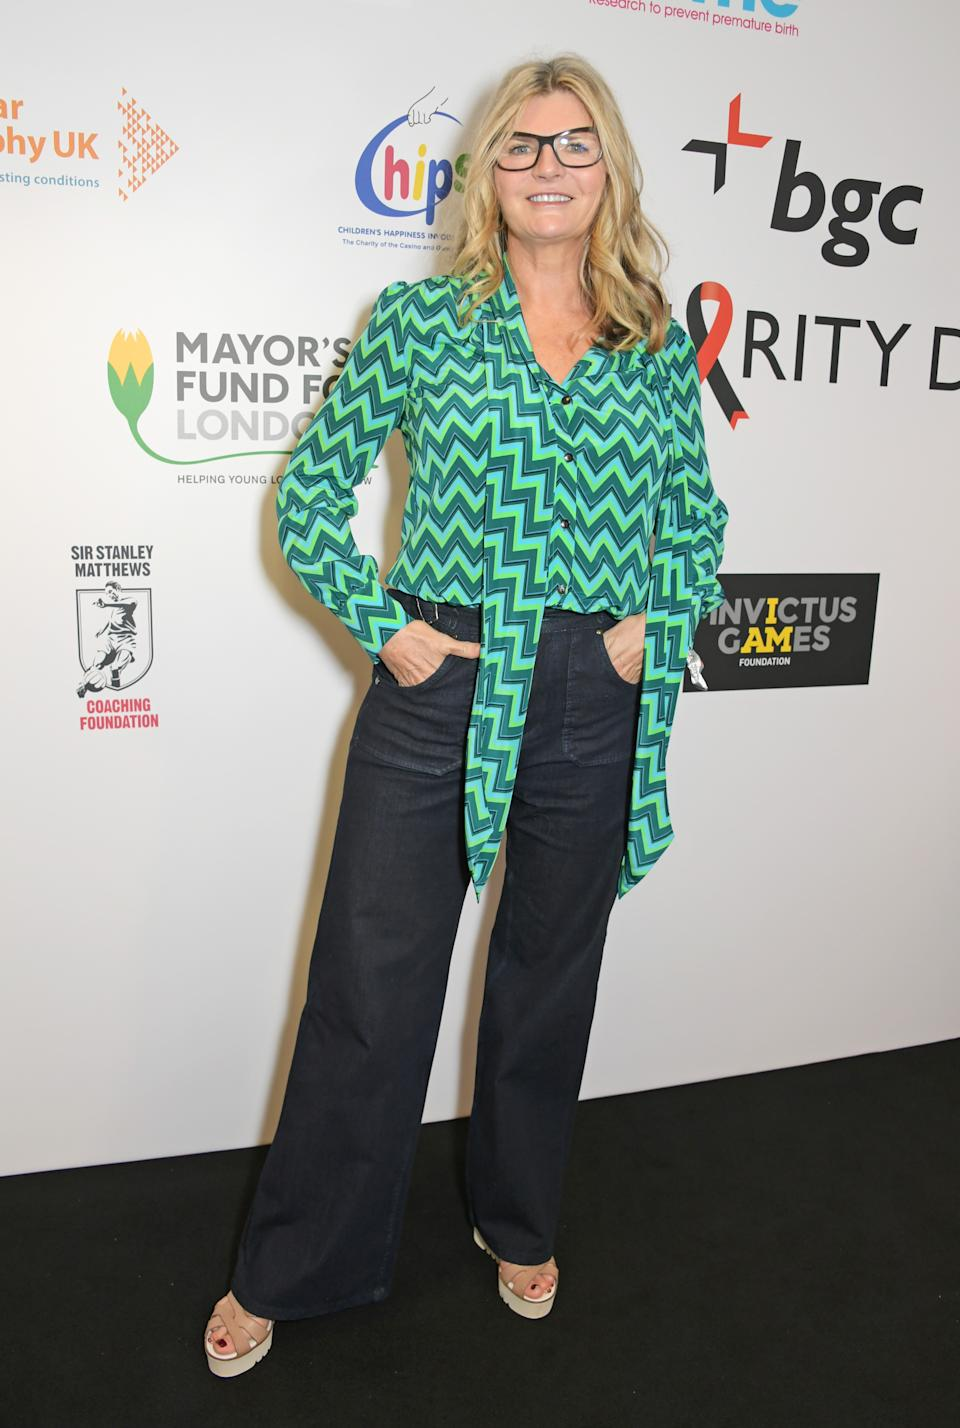 Susannah Constantine has spoken about her alcoholism (Photo by David M. Benett/Dave Benett/Dave Benett/Getty Images for BGC)